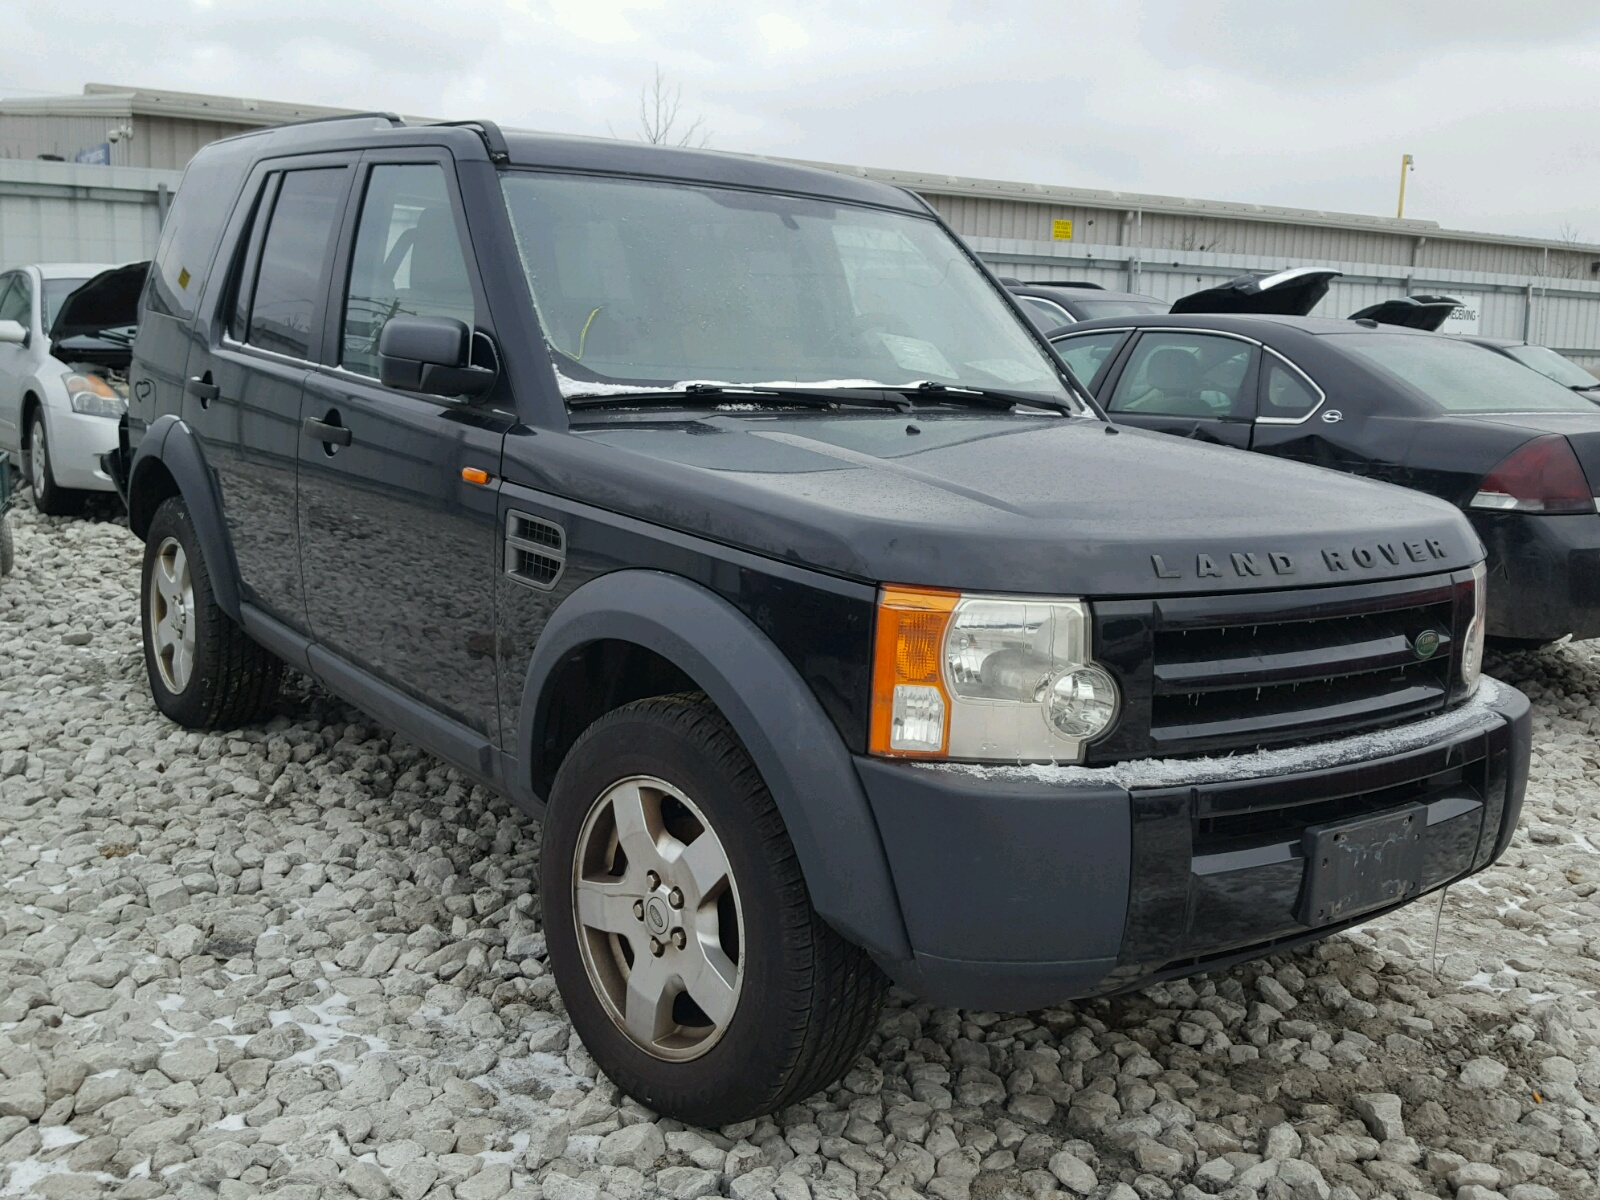 sale search land rover for expedition hse rack oem google pin landrover